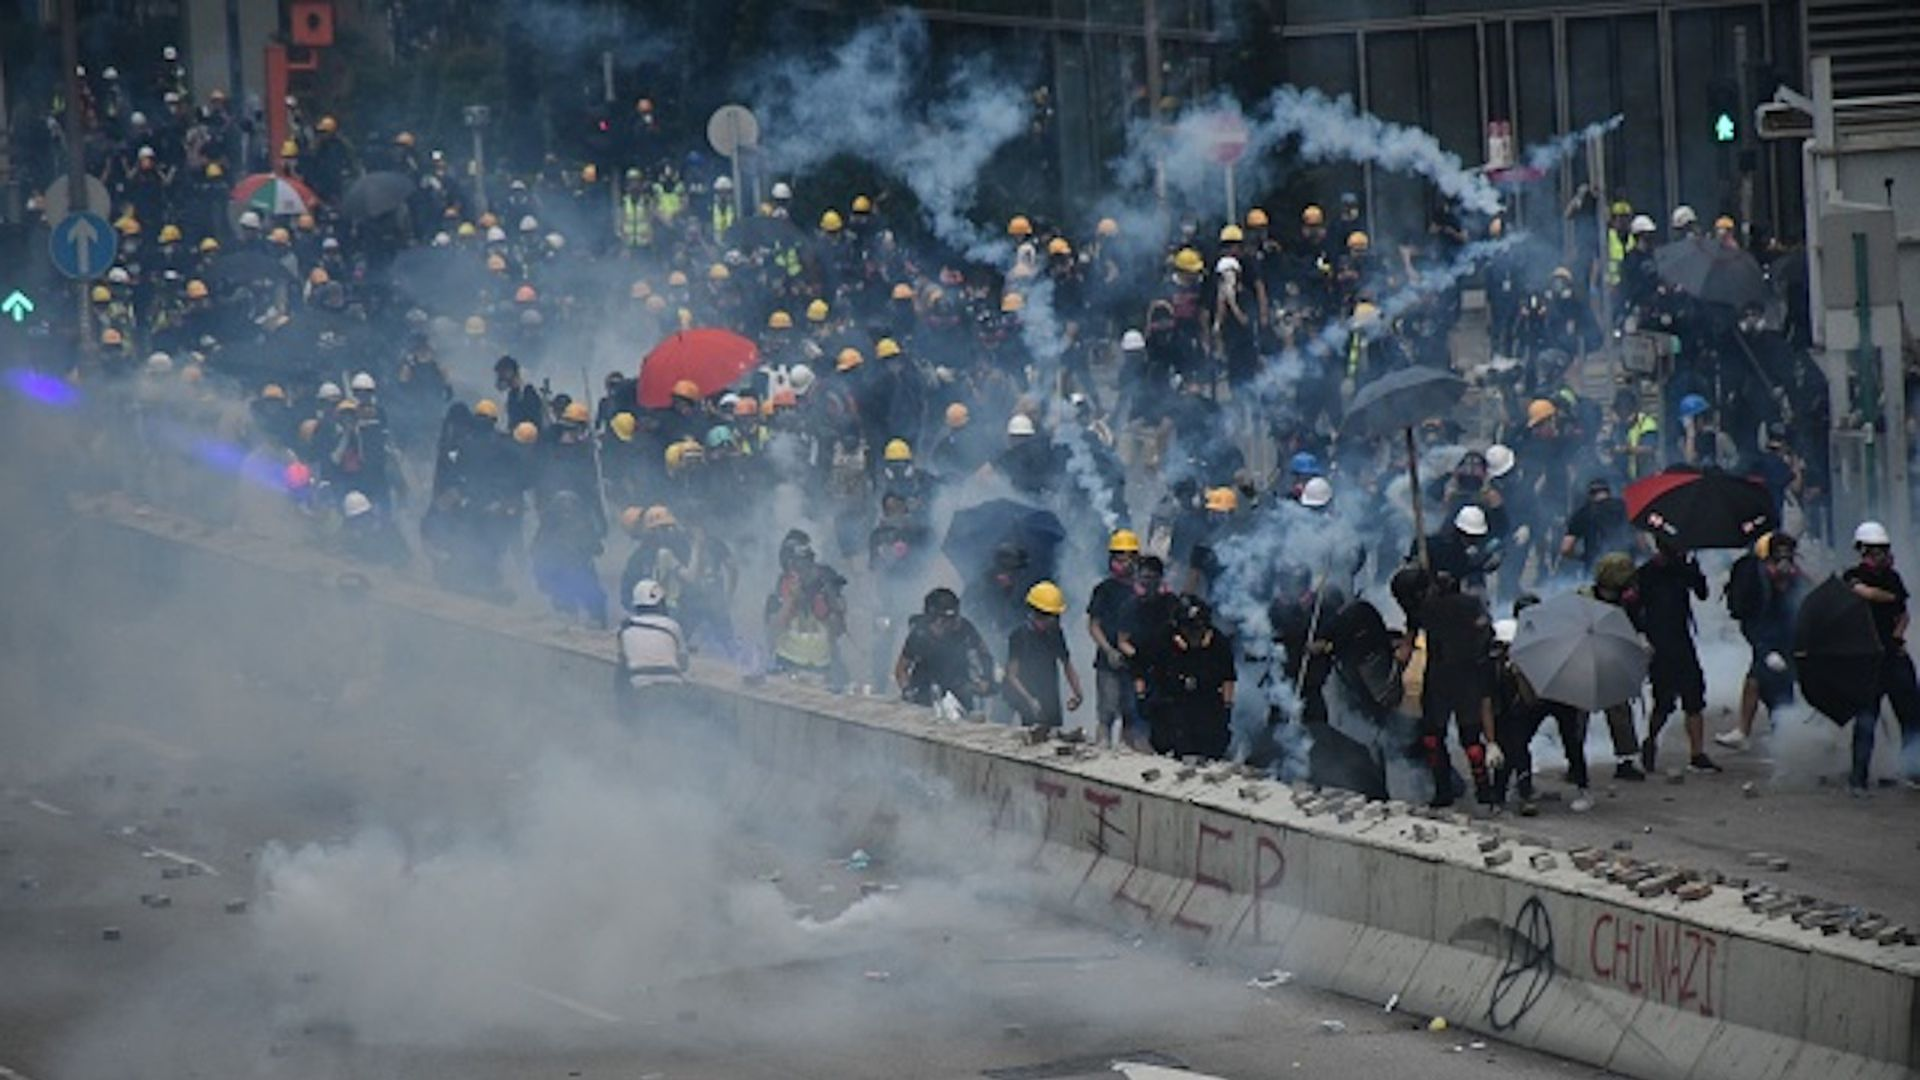 Hong Kong turns violent in new police crackdown on protesters